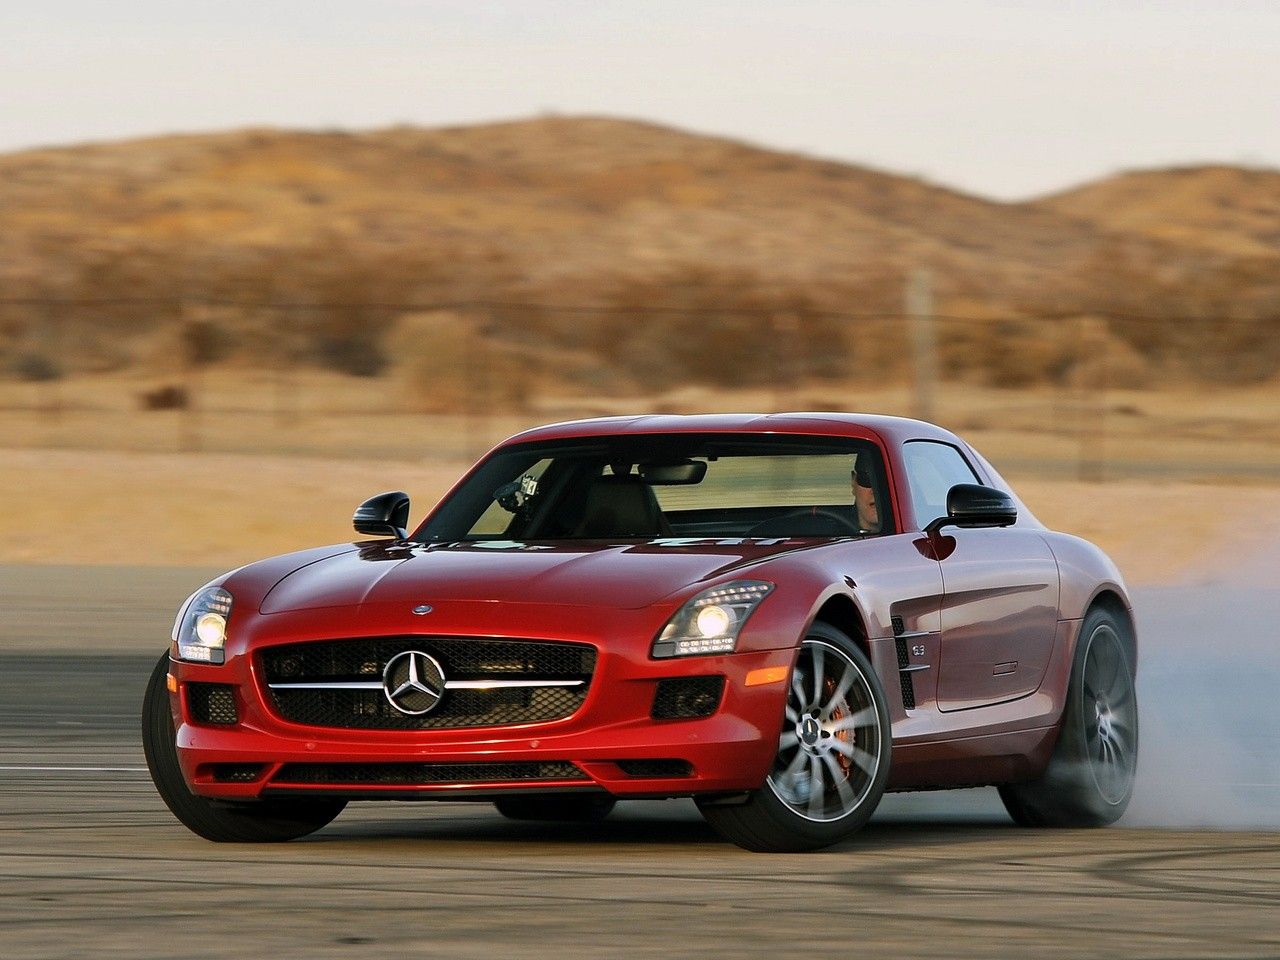 Mercedes - Benz Sls Amg Mercedes Benz Sls Amg Gt Specs And Photos 2012 2013 2014